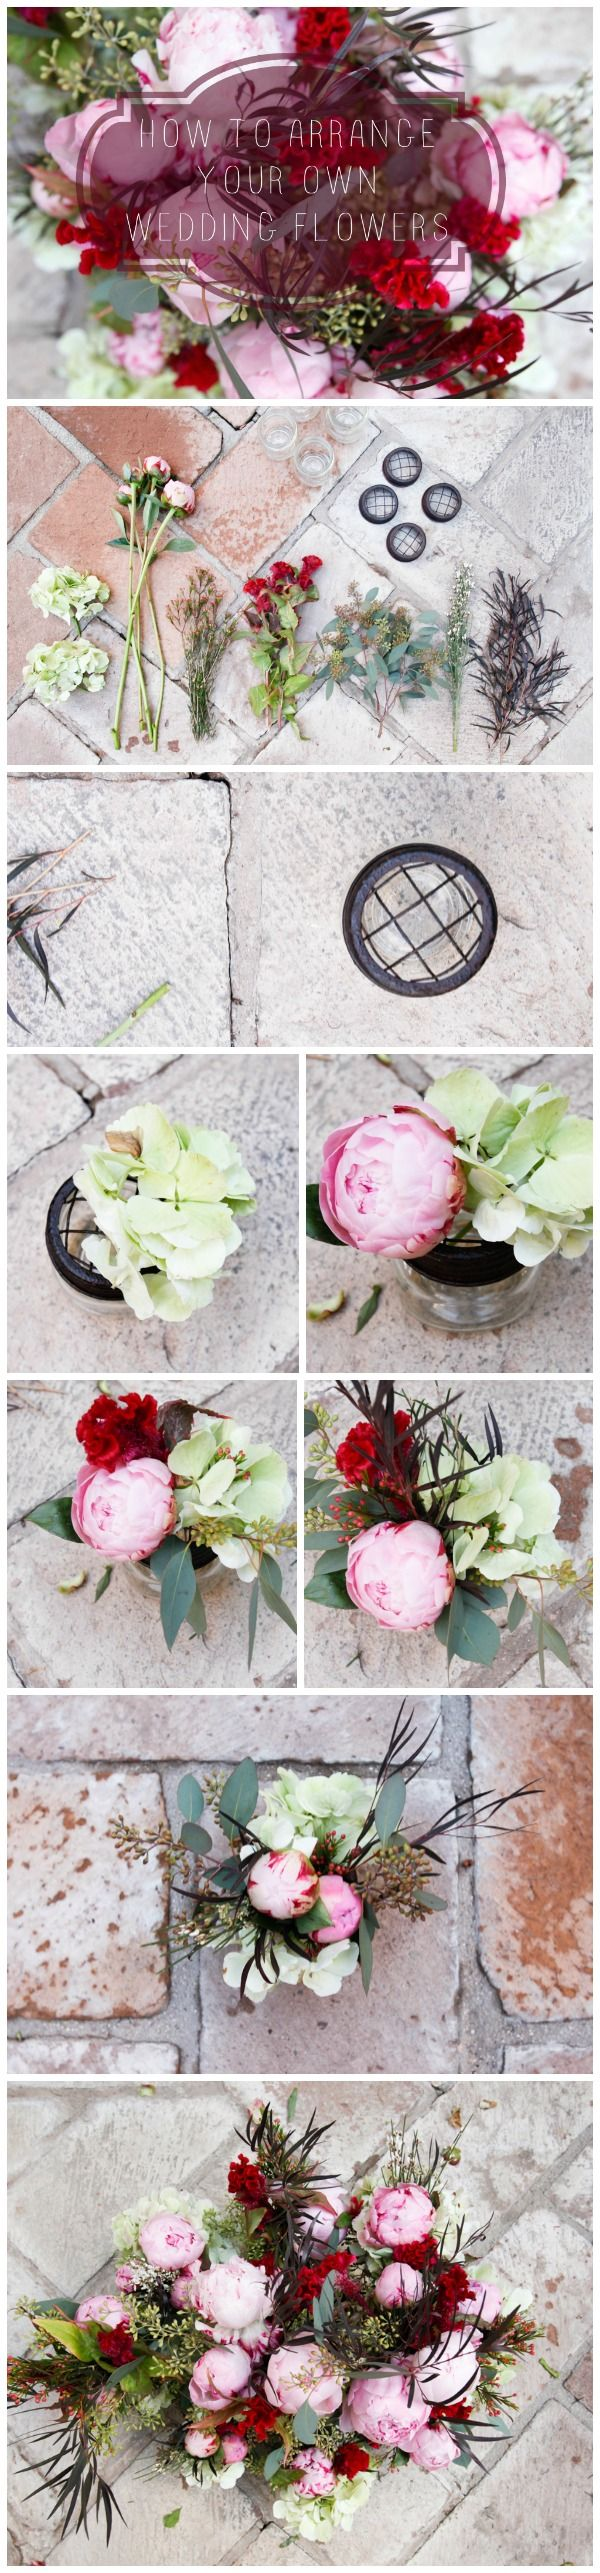 91 best DIY\'s and How-To\'s - Wedding Flowers images on Pinterest ...